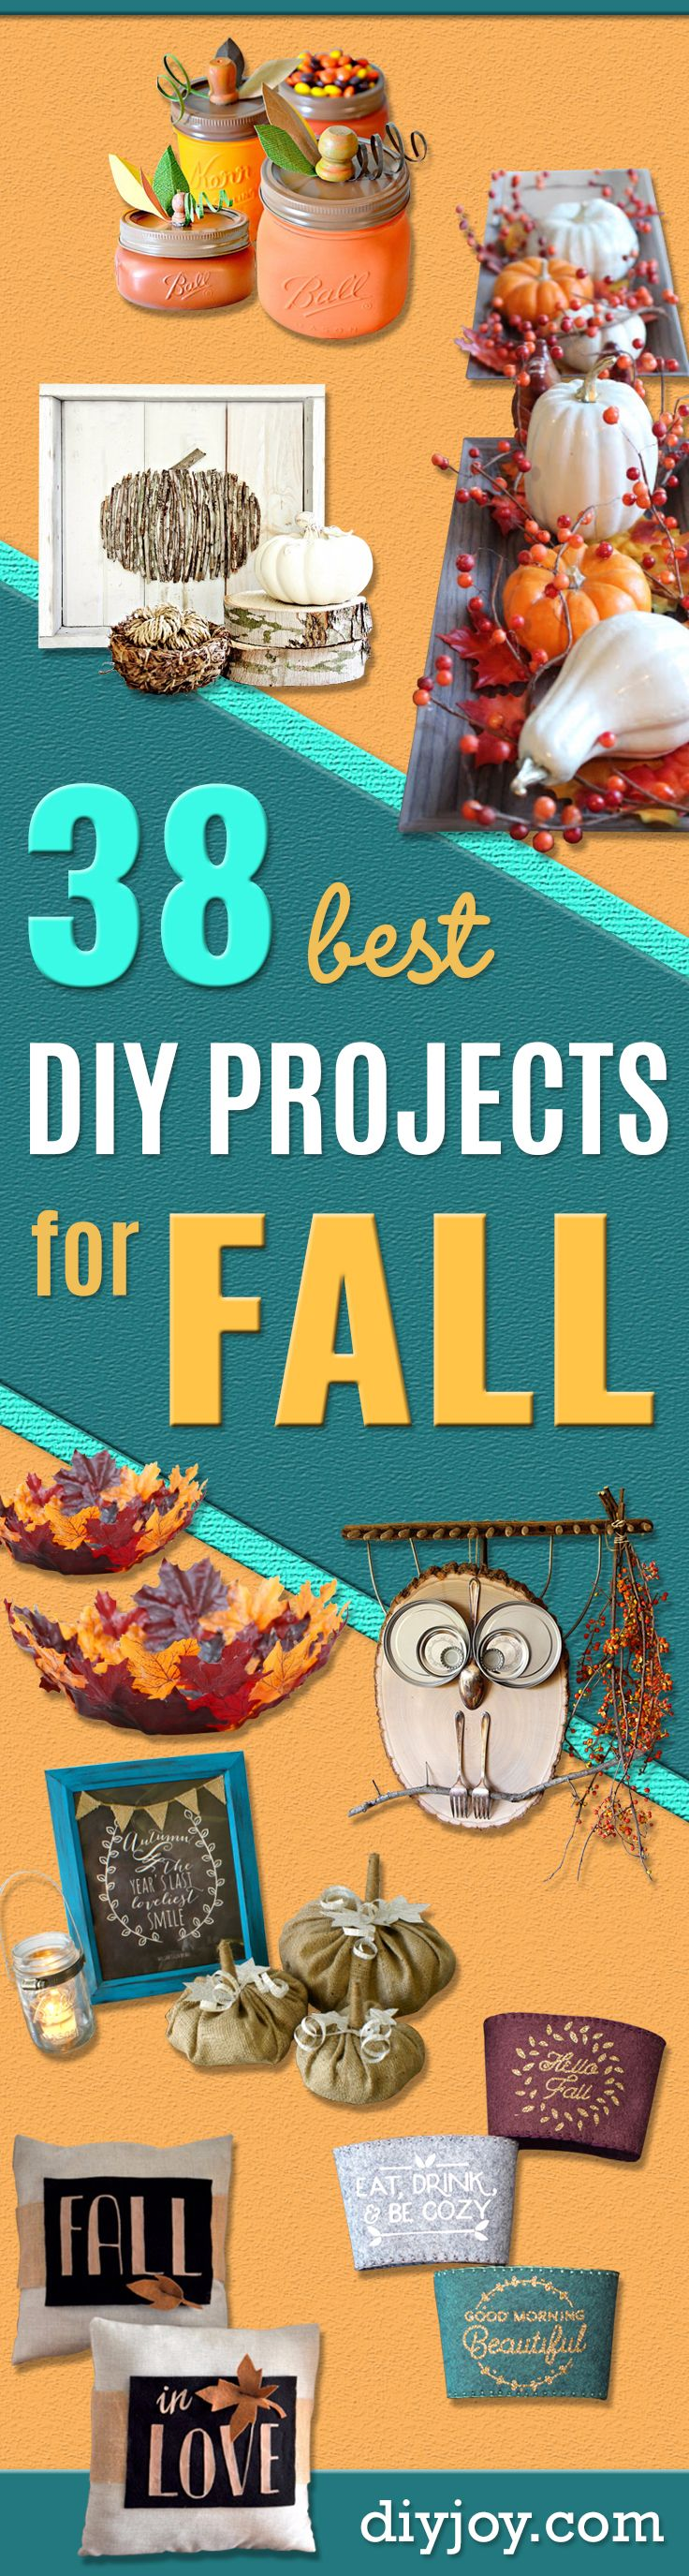 38 Best DIY Projects for Fall - Quick And Easy Projects For Fall, Fun DIY Projects To Try This Fall, Cute Fall Craft Ideas, Fall Decors, Easy DIY Crafts For Fall http://diyjoy.com/diy-projects-for-fall